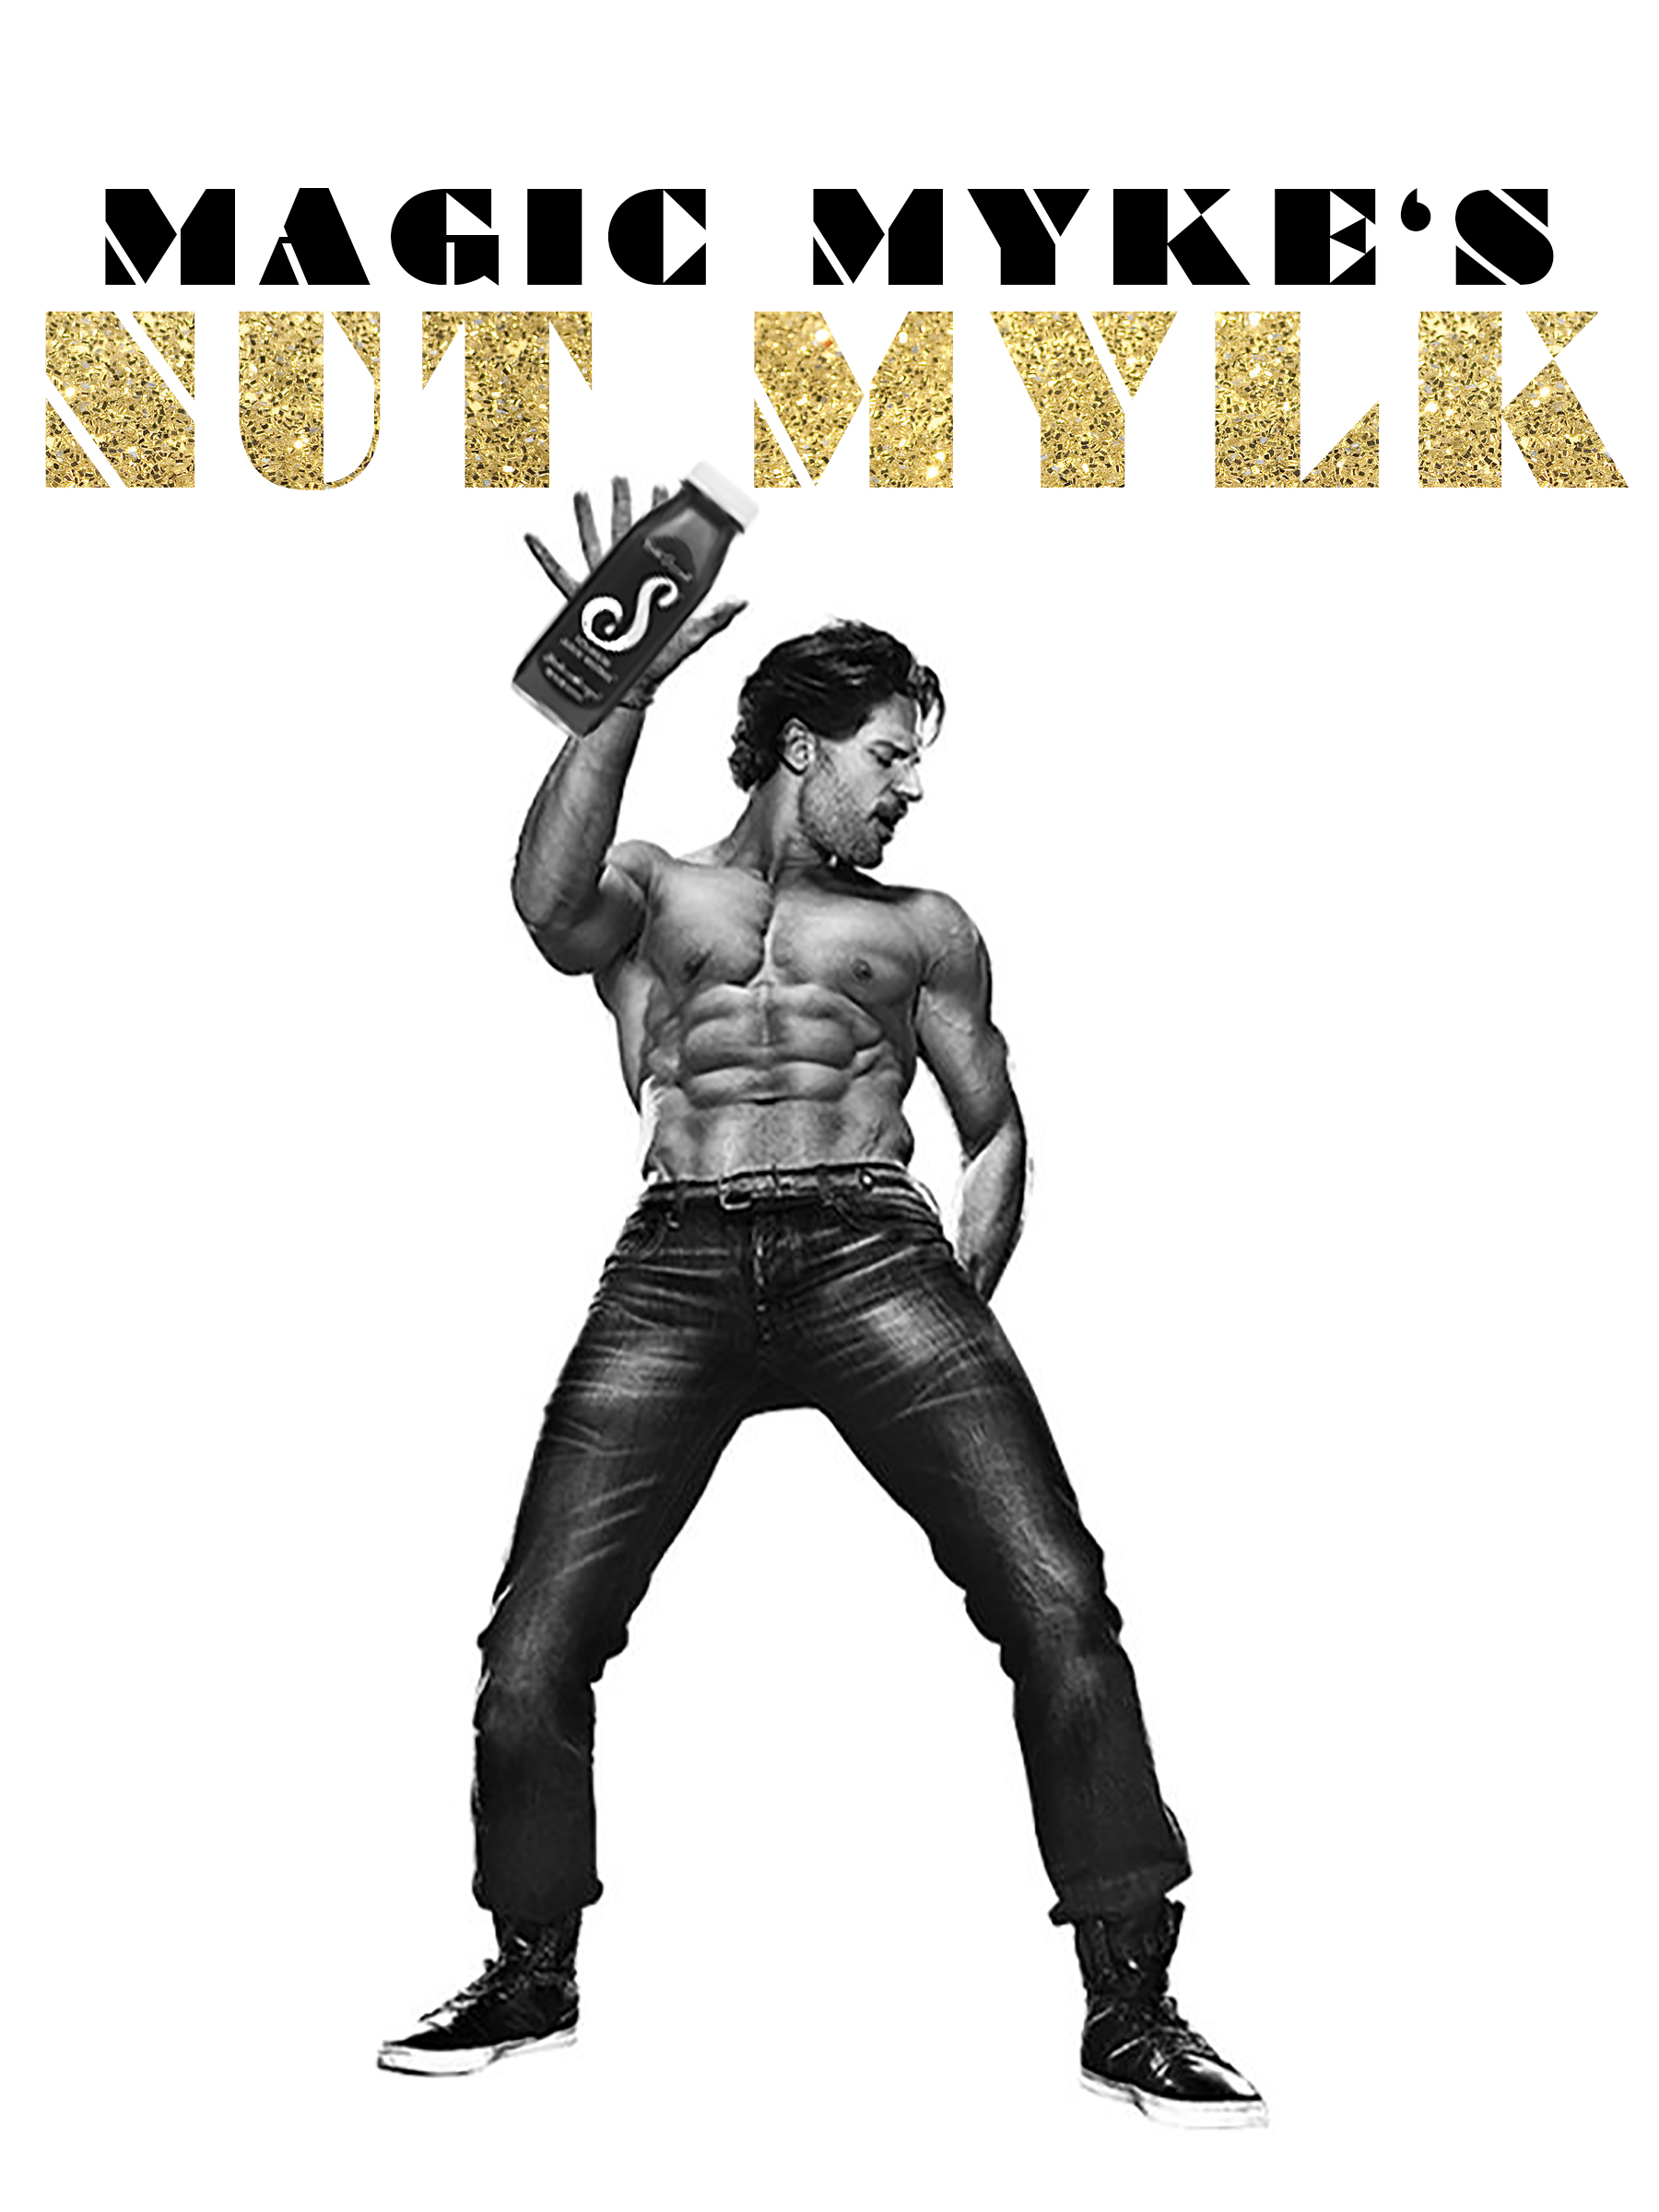 Collage-esque marketing flier made for Squeeze Juiceworks to promote their new beverage, themed (and named) for the original Magic Mike movie franchise.